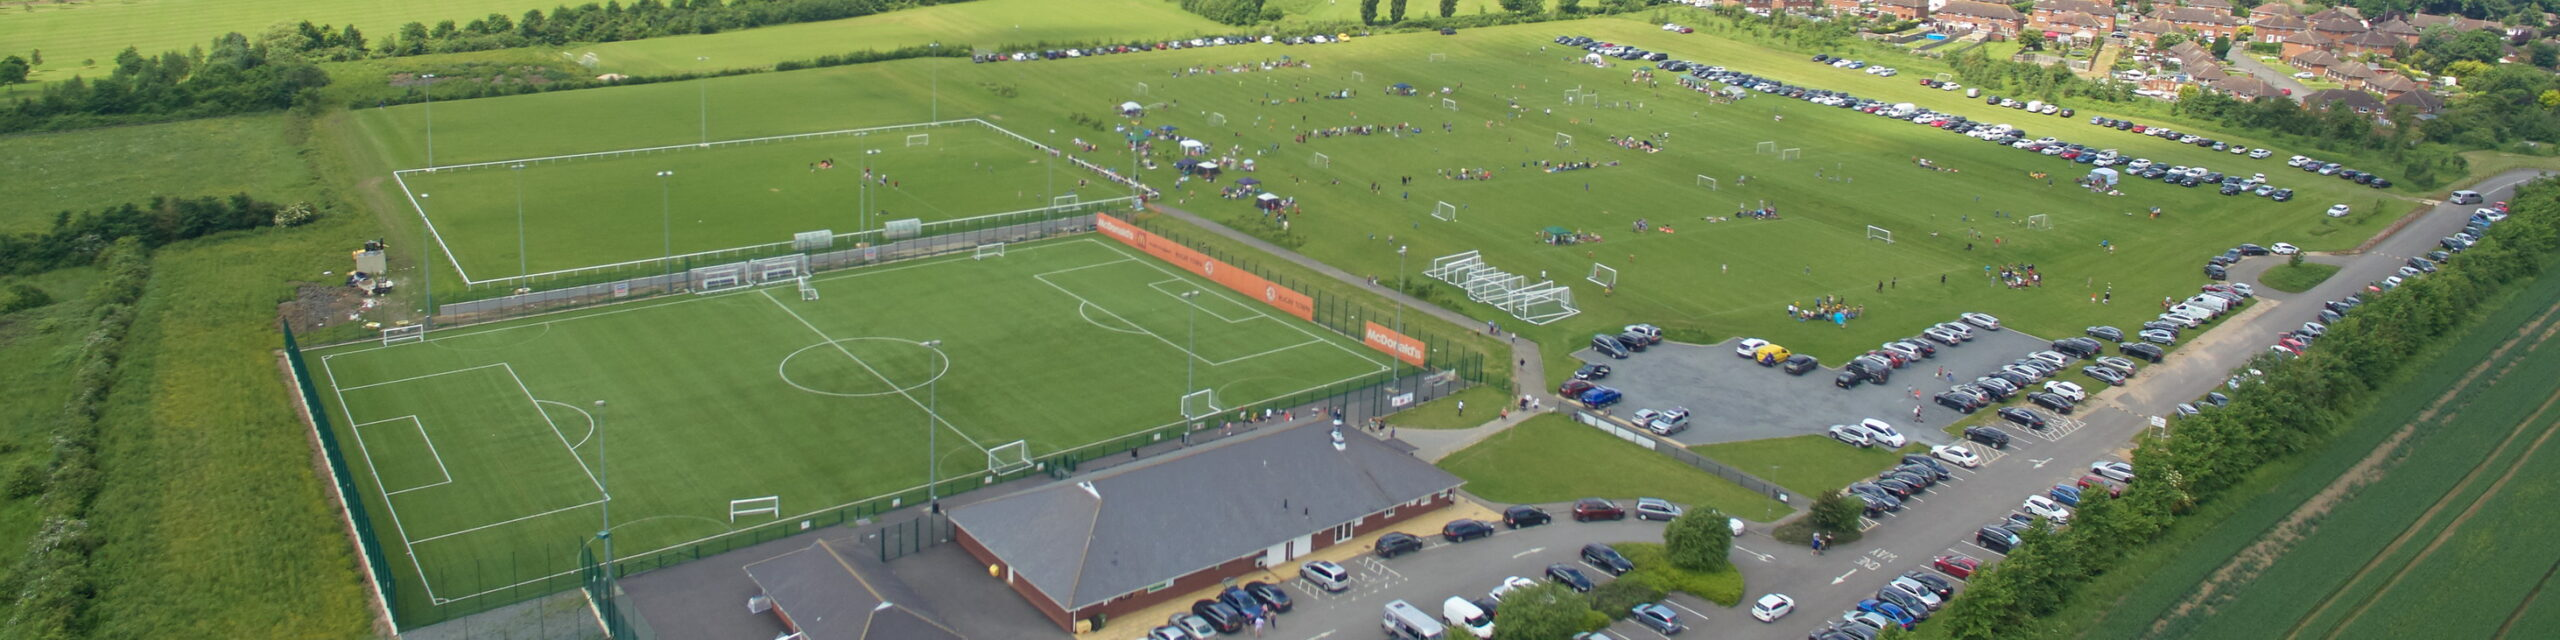 Rugby Borough FC - Kilsby Lane aerial view